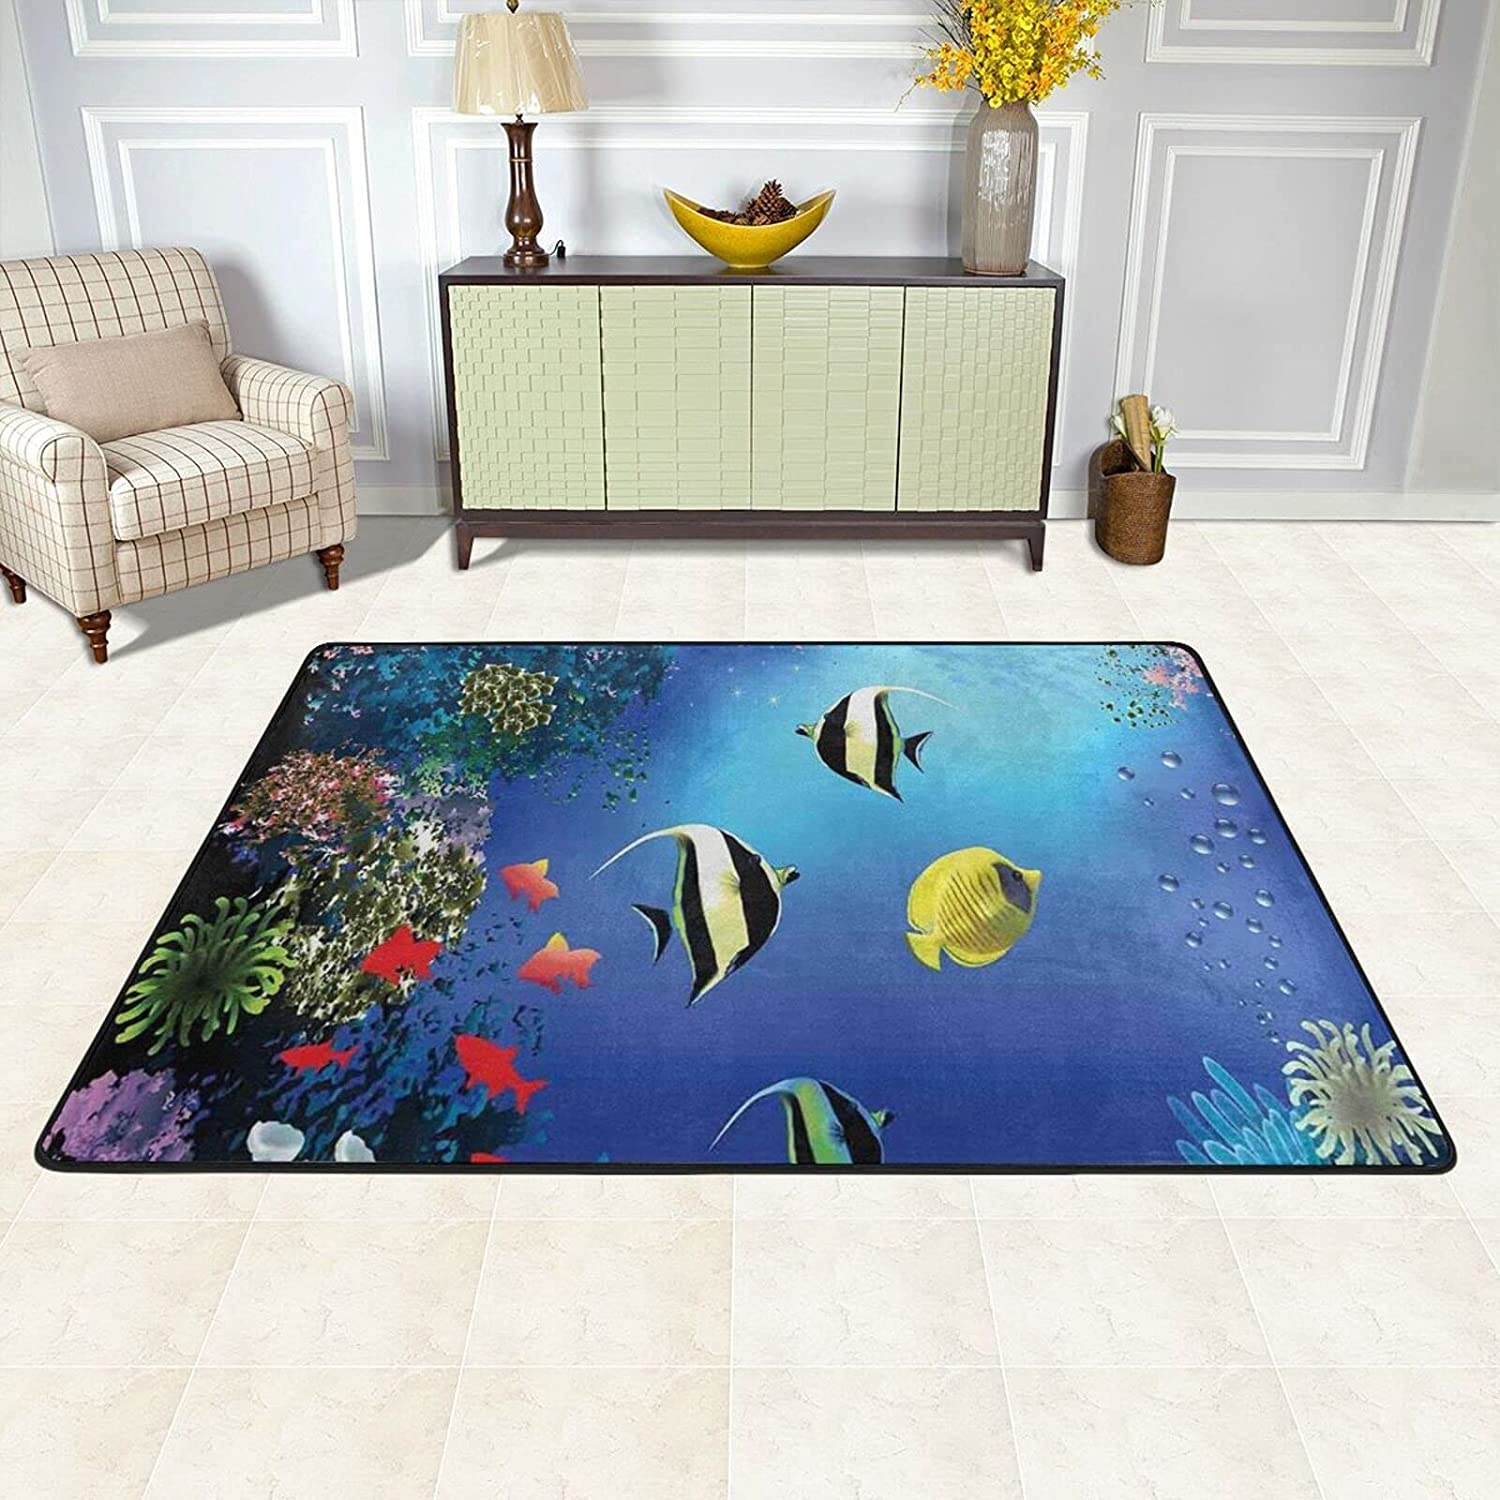 Free shipping anywhere in the nation TPOKIM Area Rugs Pad for Colorful Underwater Sales results No. 1 Room Living Bedroom